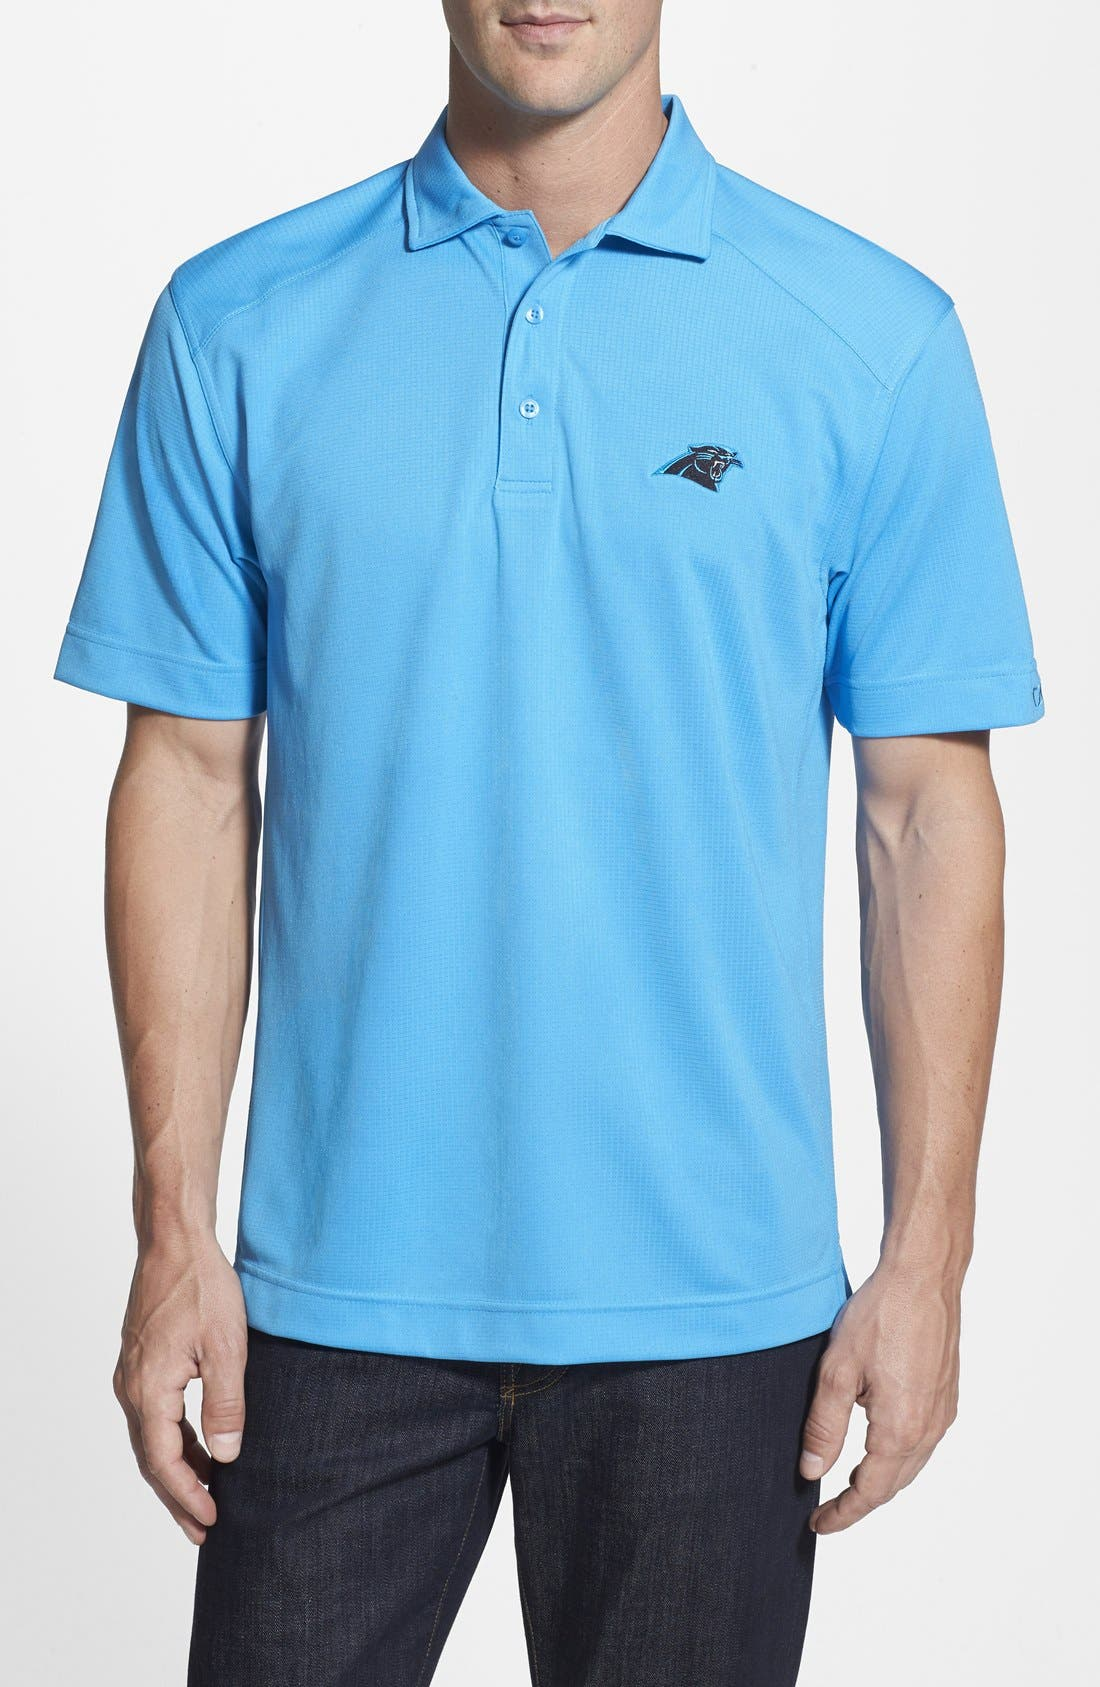 Alternate Image 1 Selected - Cutter & Buck Carolina Panthers - Genre DryTec Moisture Wicking Polo